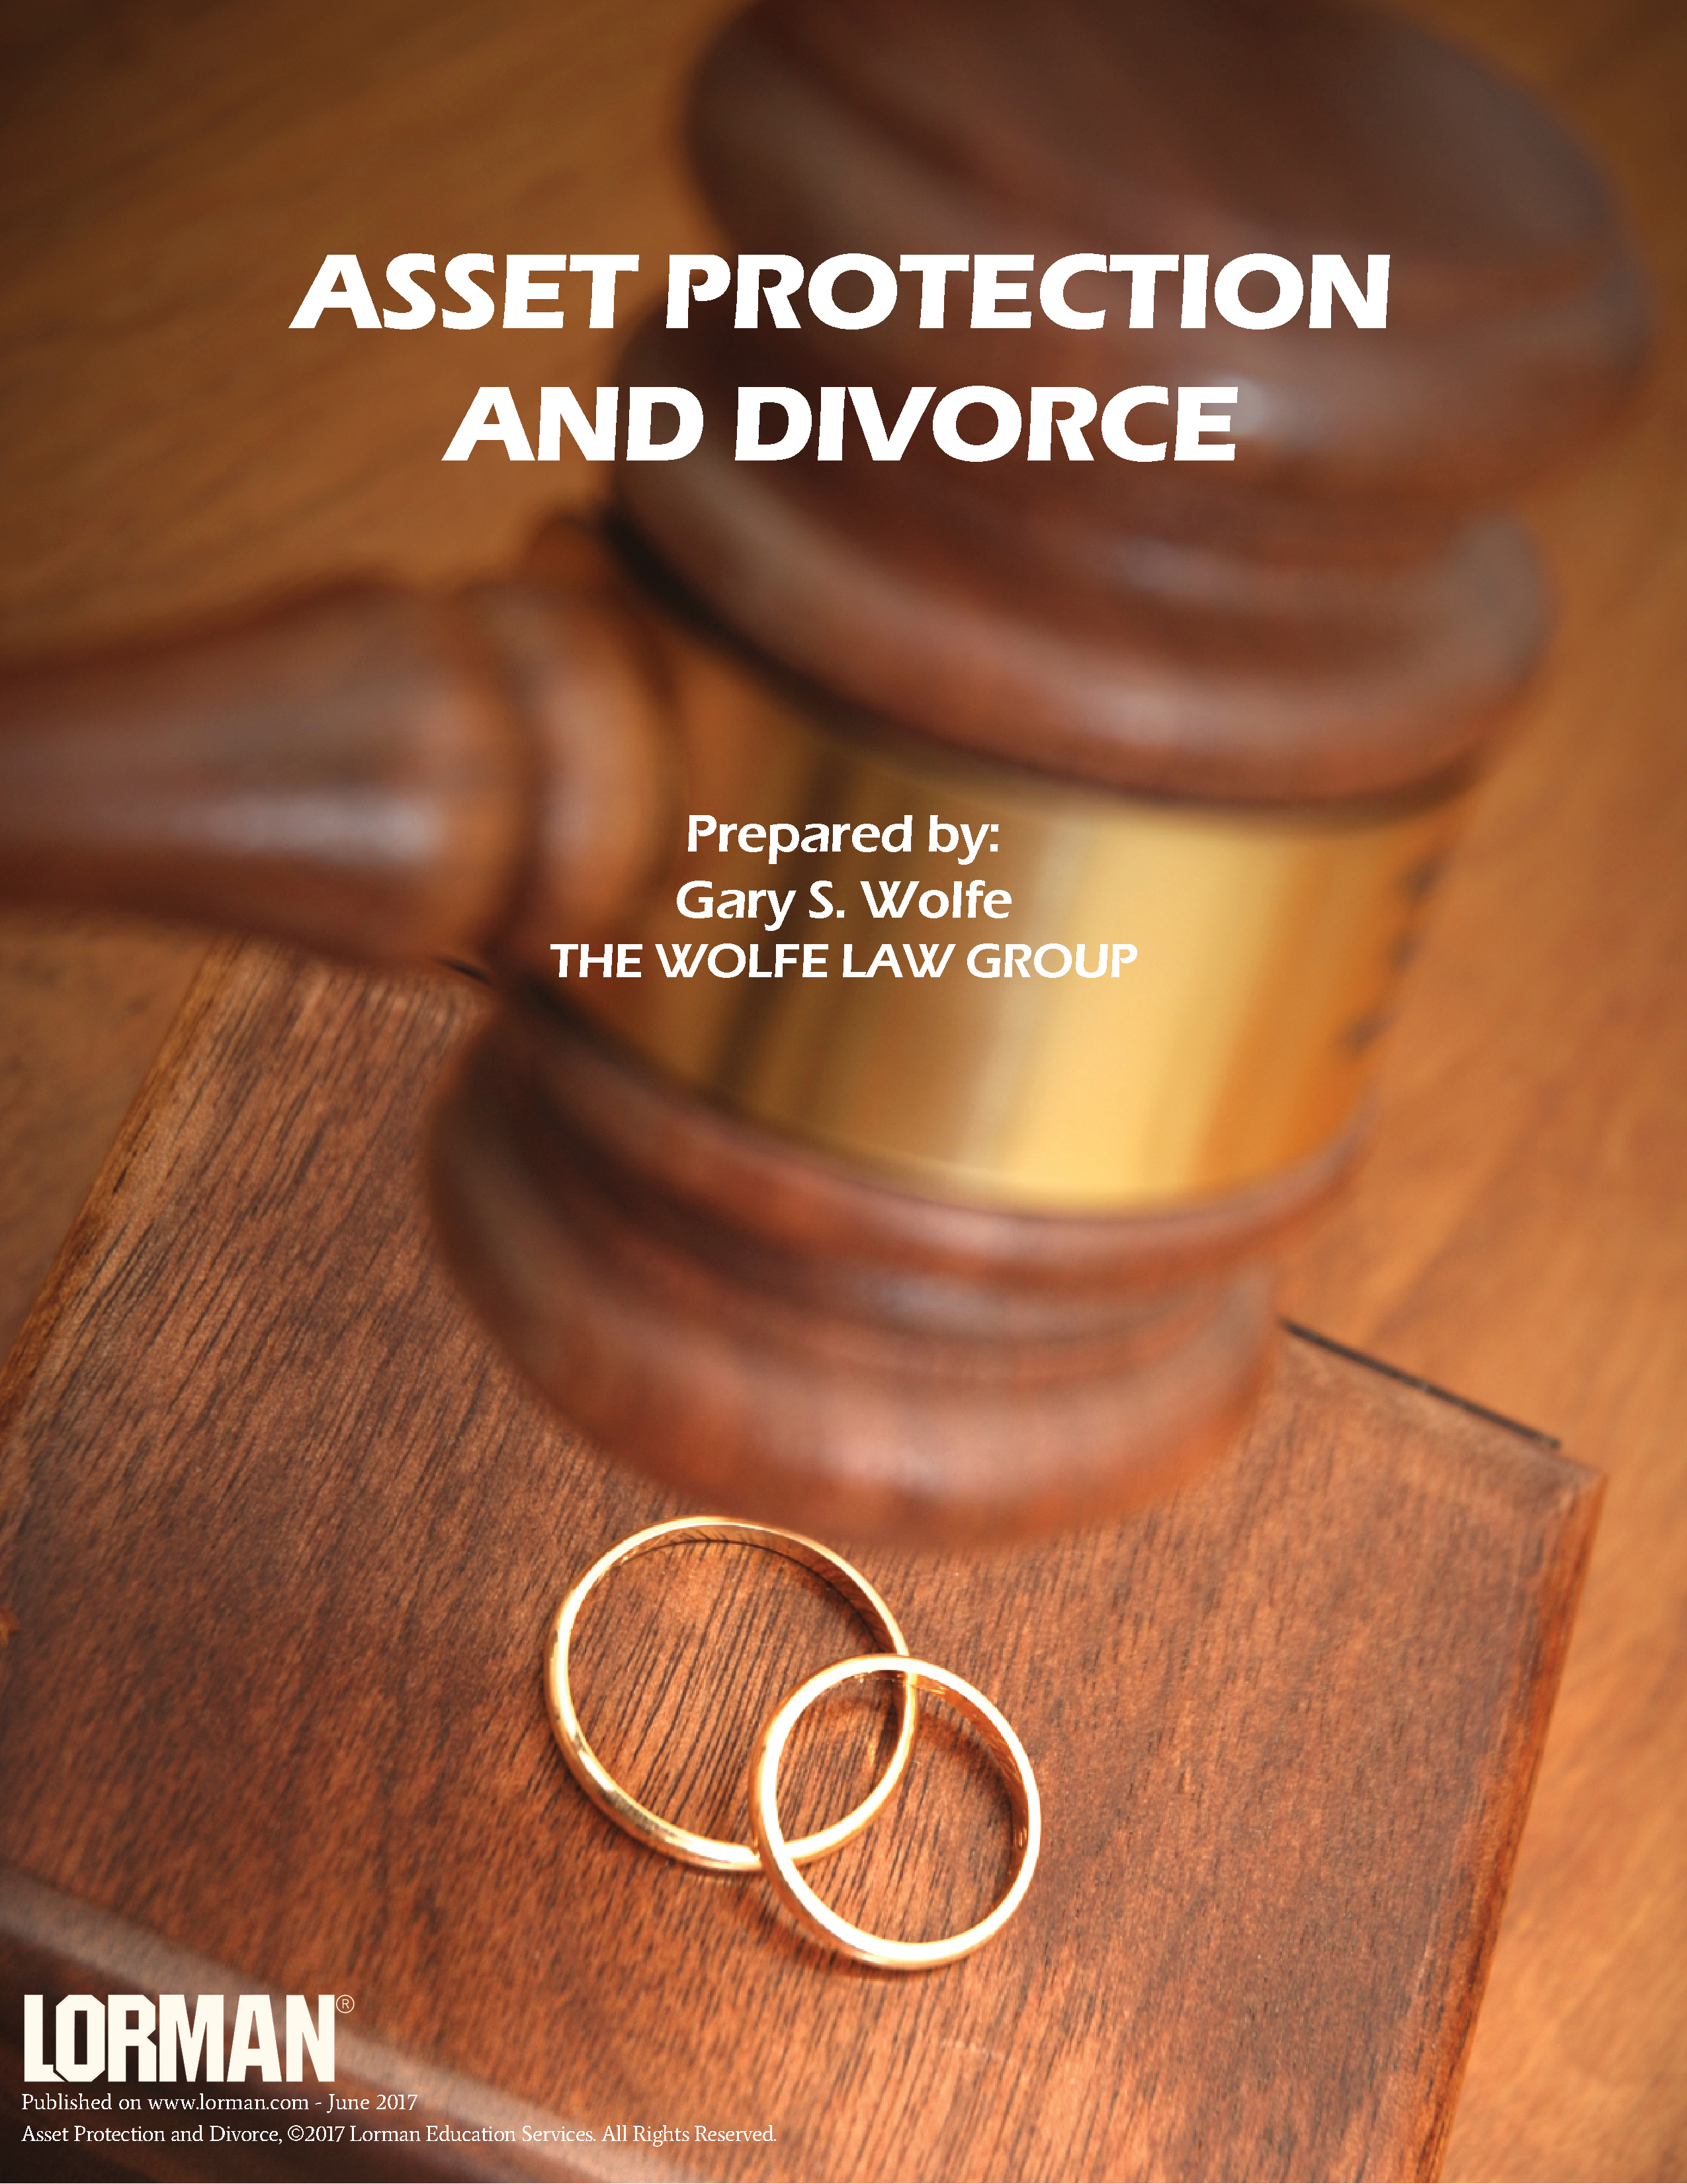 Asset Protection and Divorce